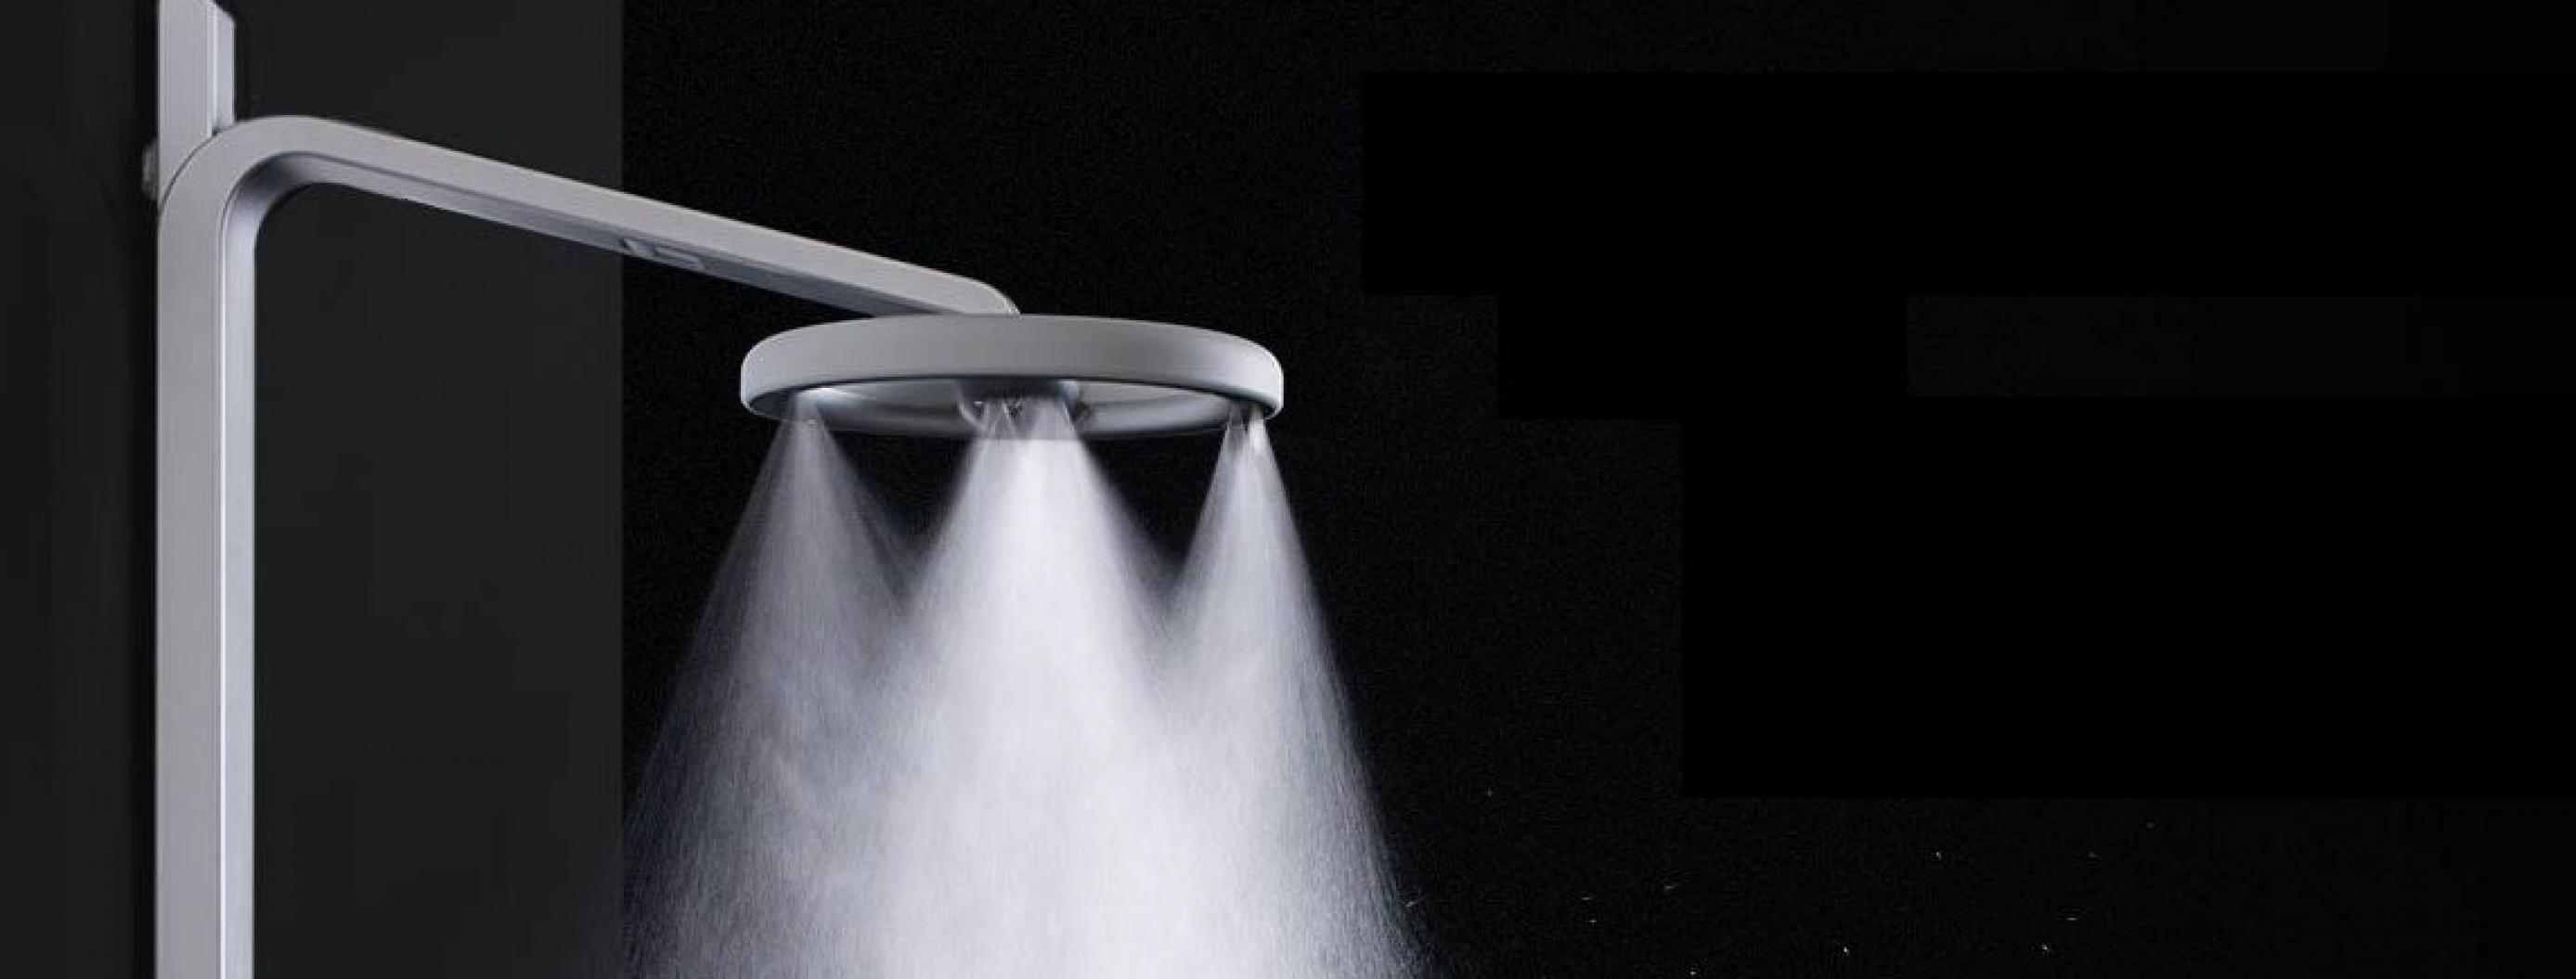 Nebia's Innovative Shower System is Now Available on Amazon